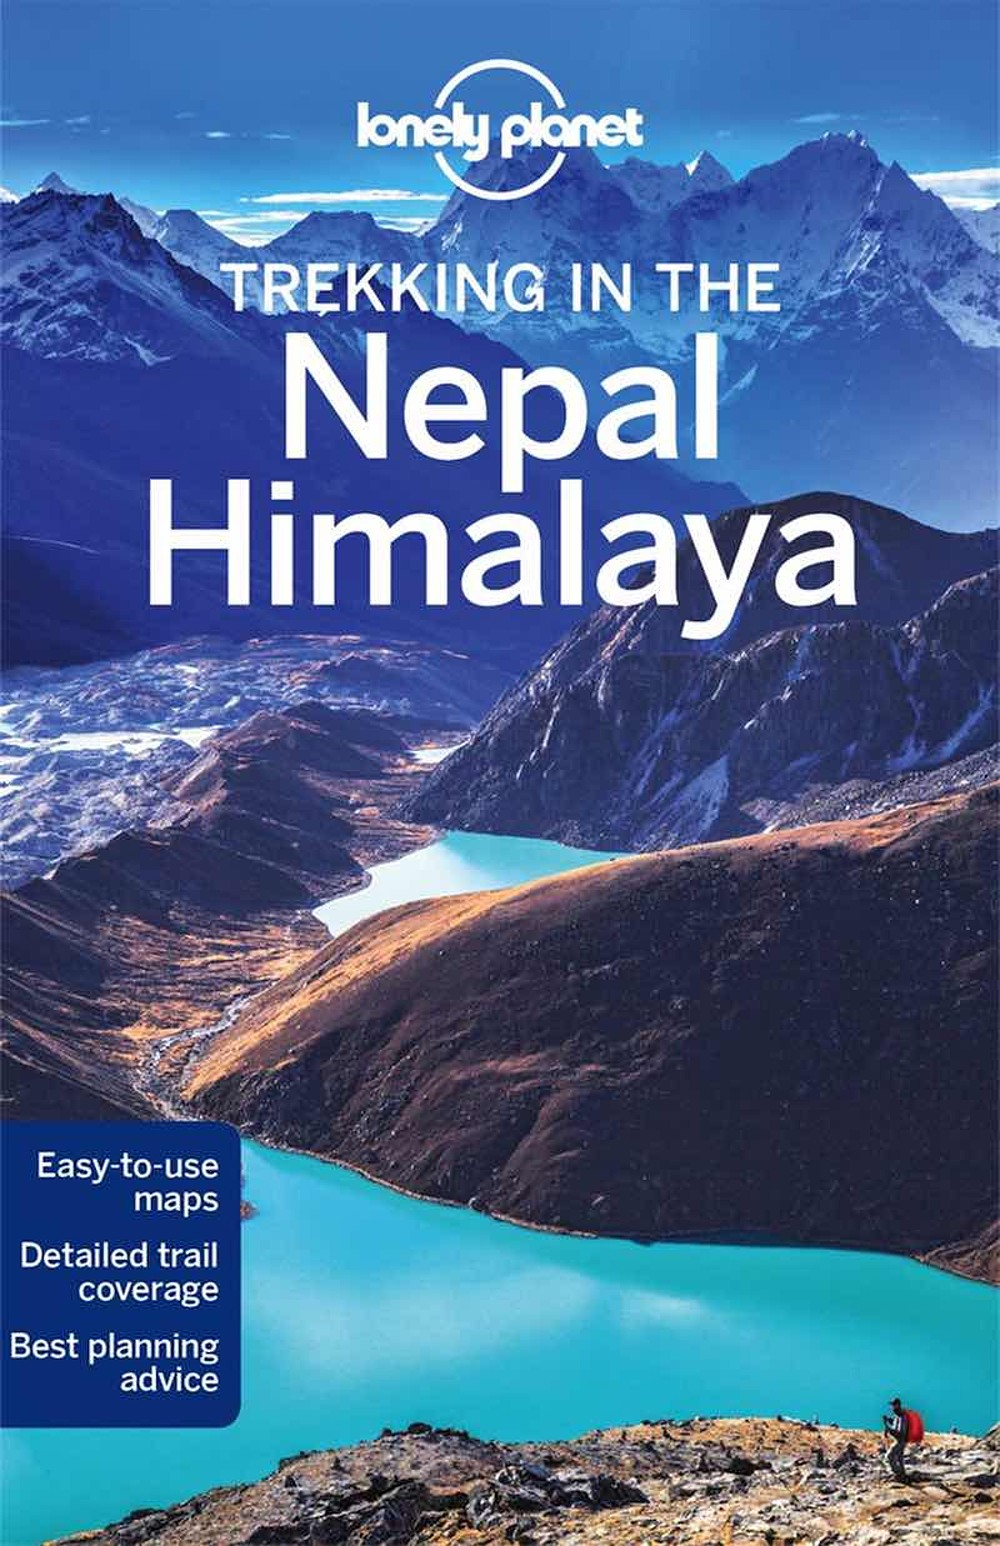 Lonely Planet Trekking in Nepal Himalaya 10.